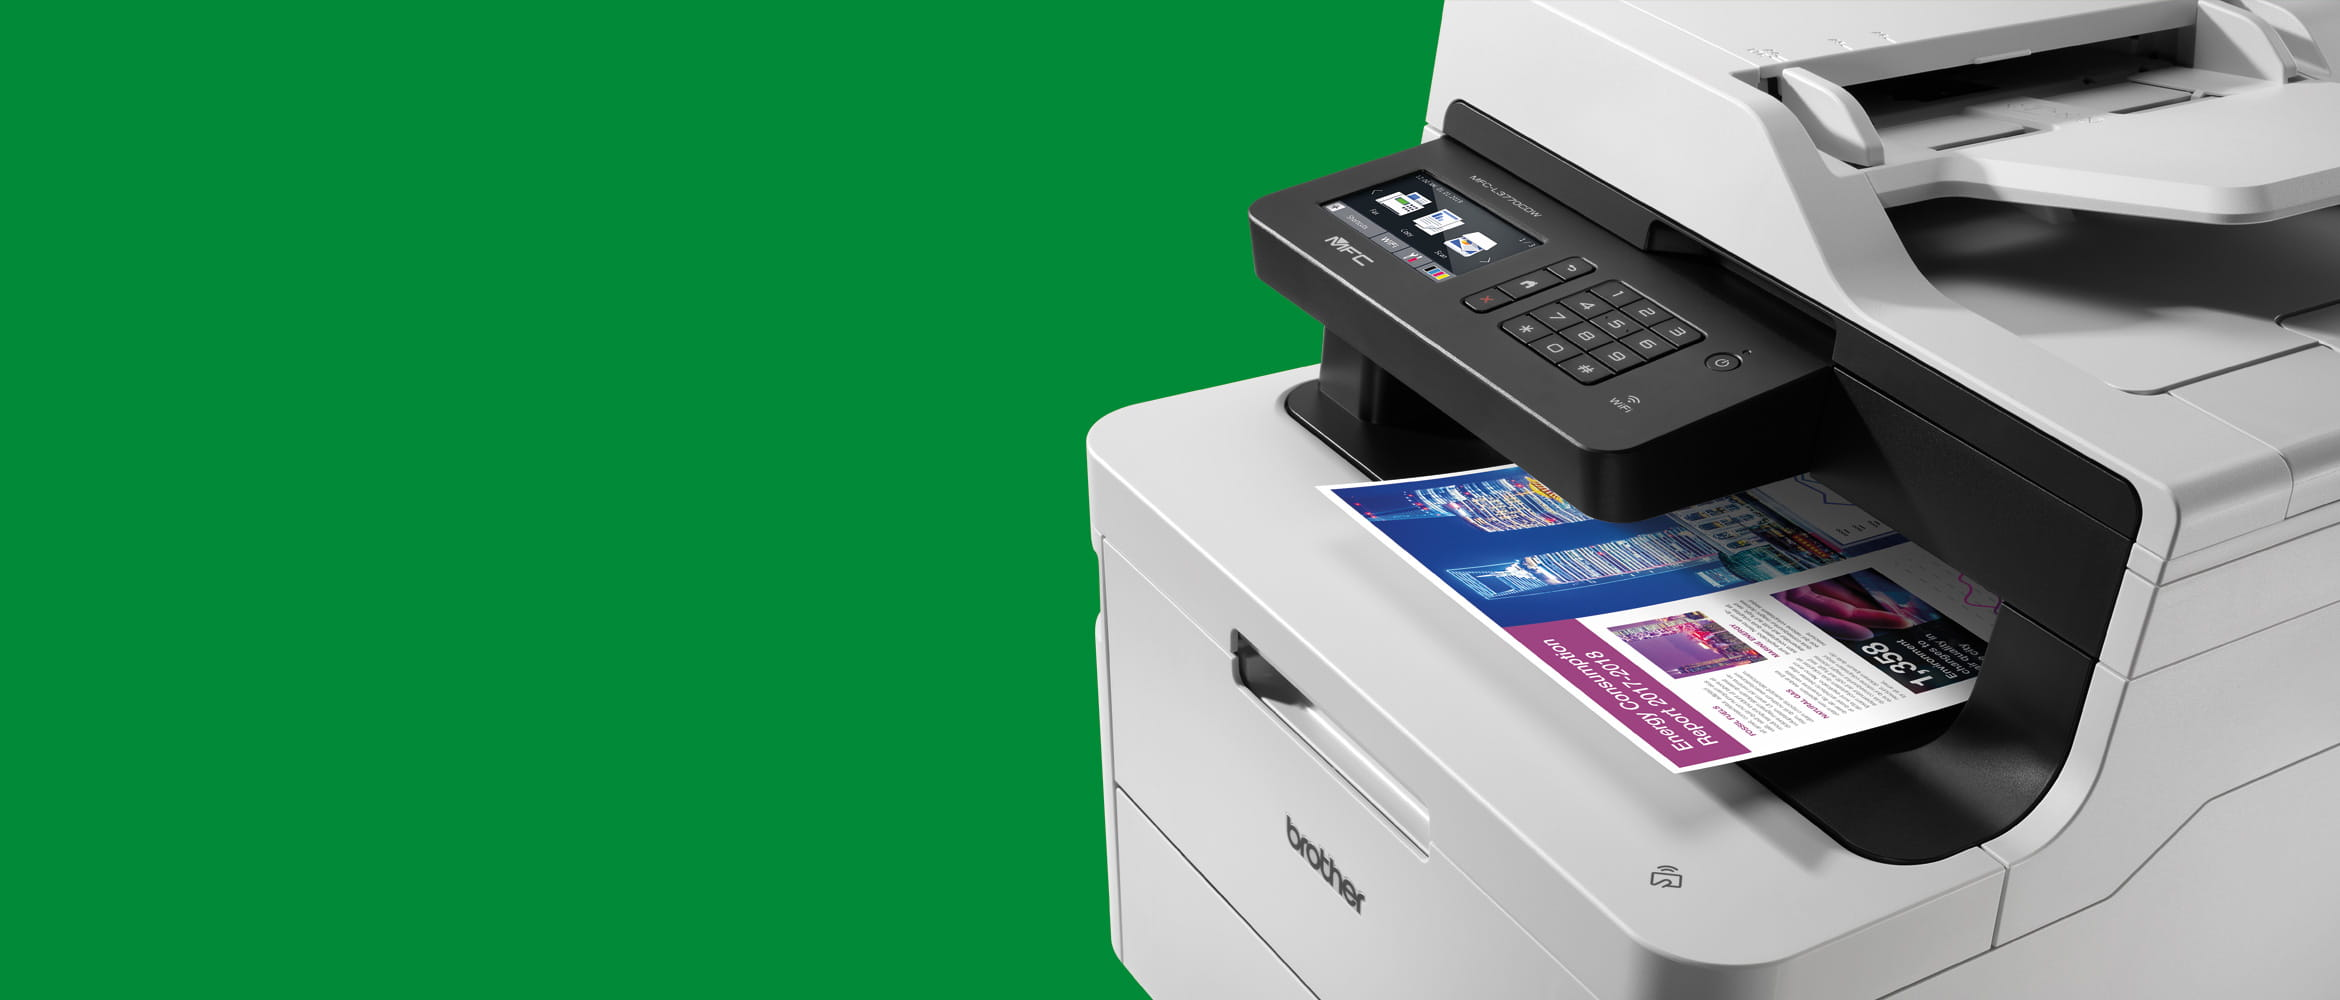 Brother colour MFC-L3770CDW printer on green background